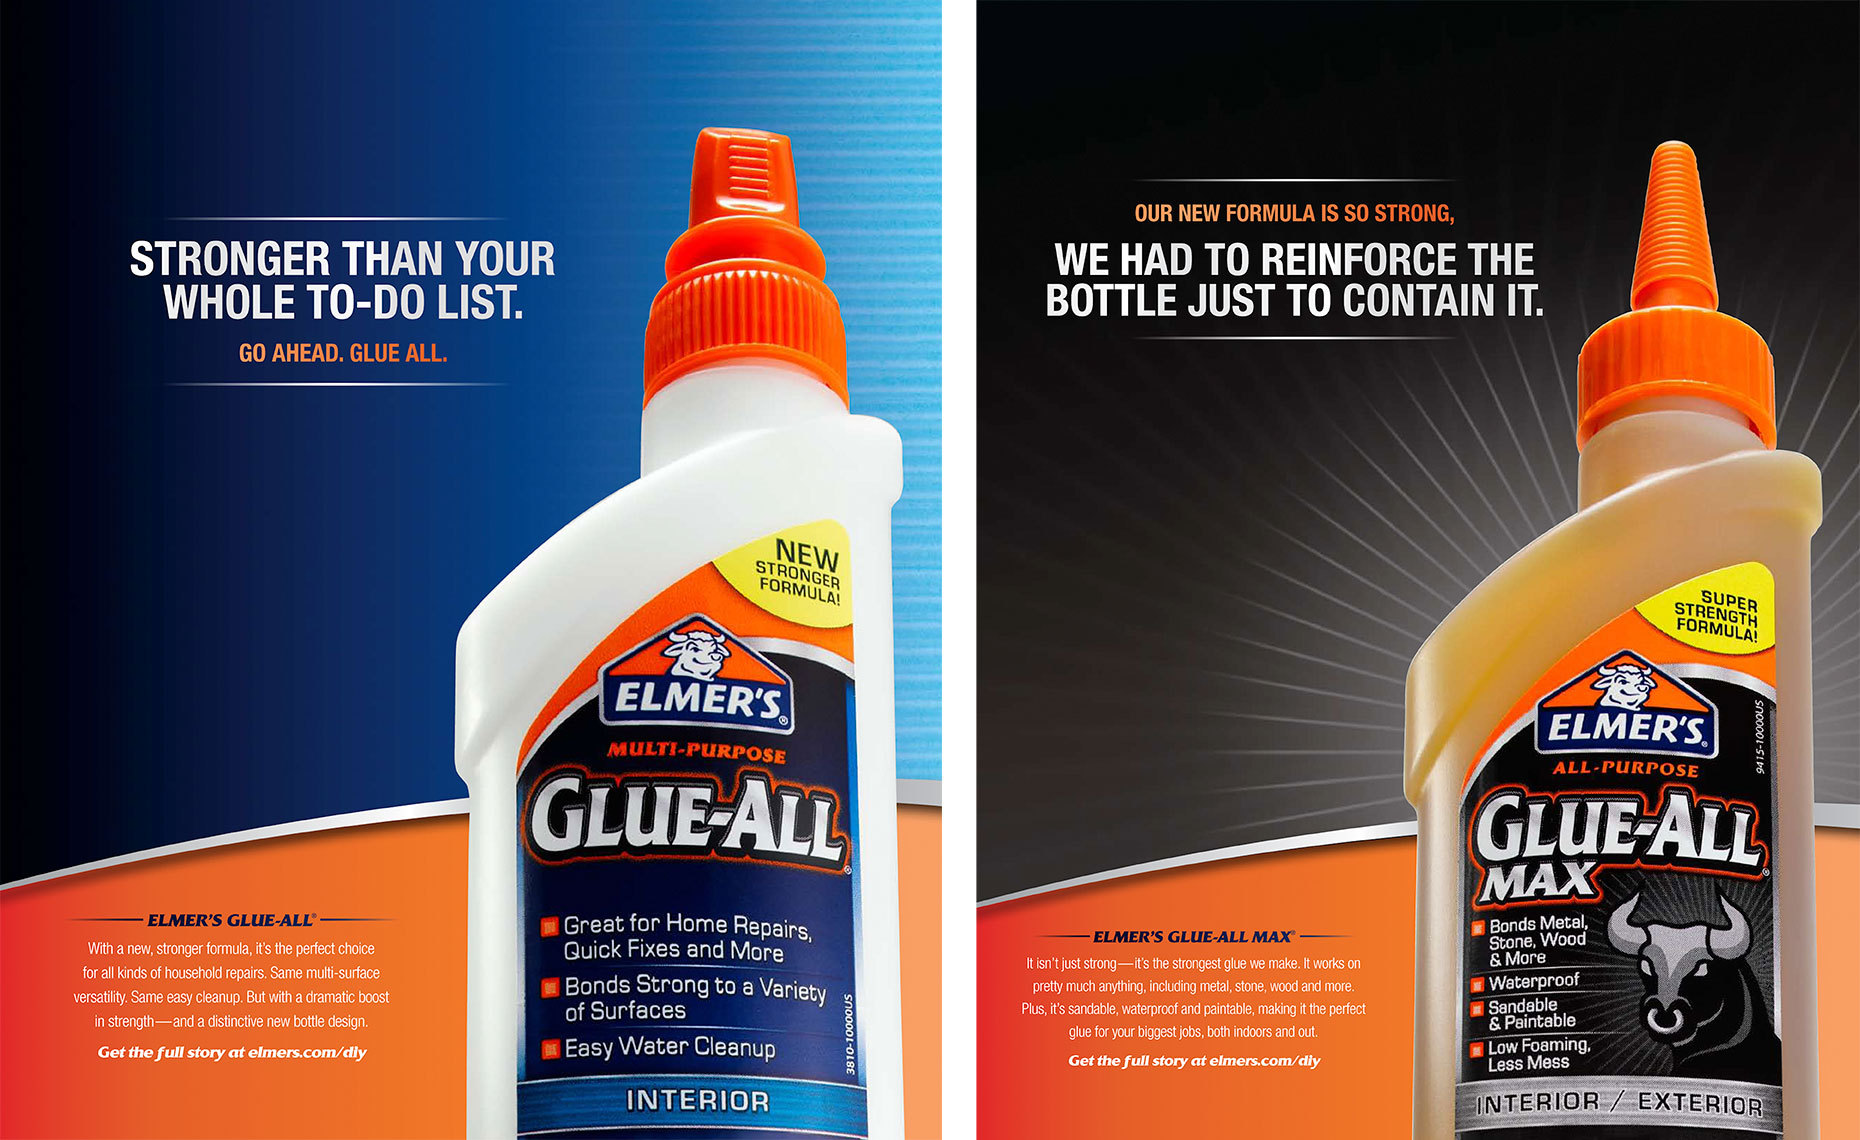 Elmers glue-all advertisement